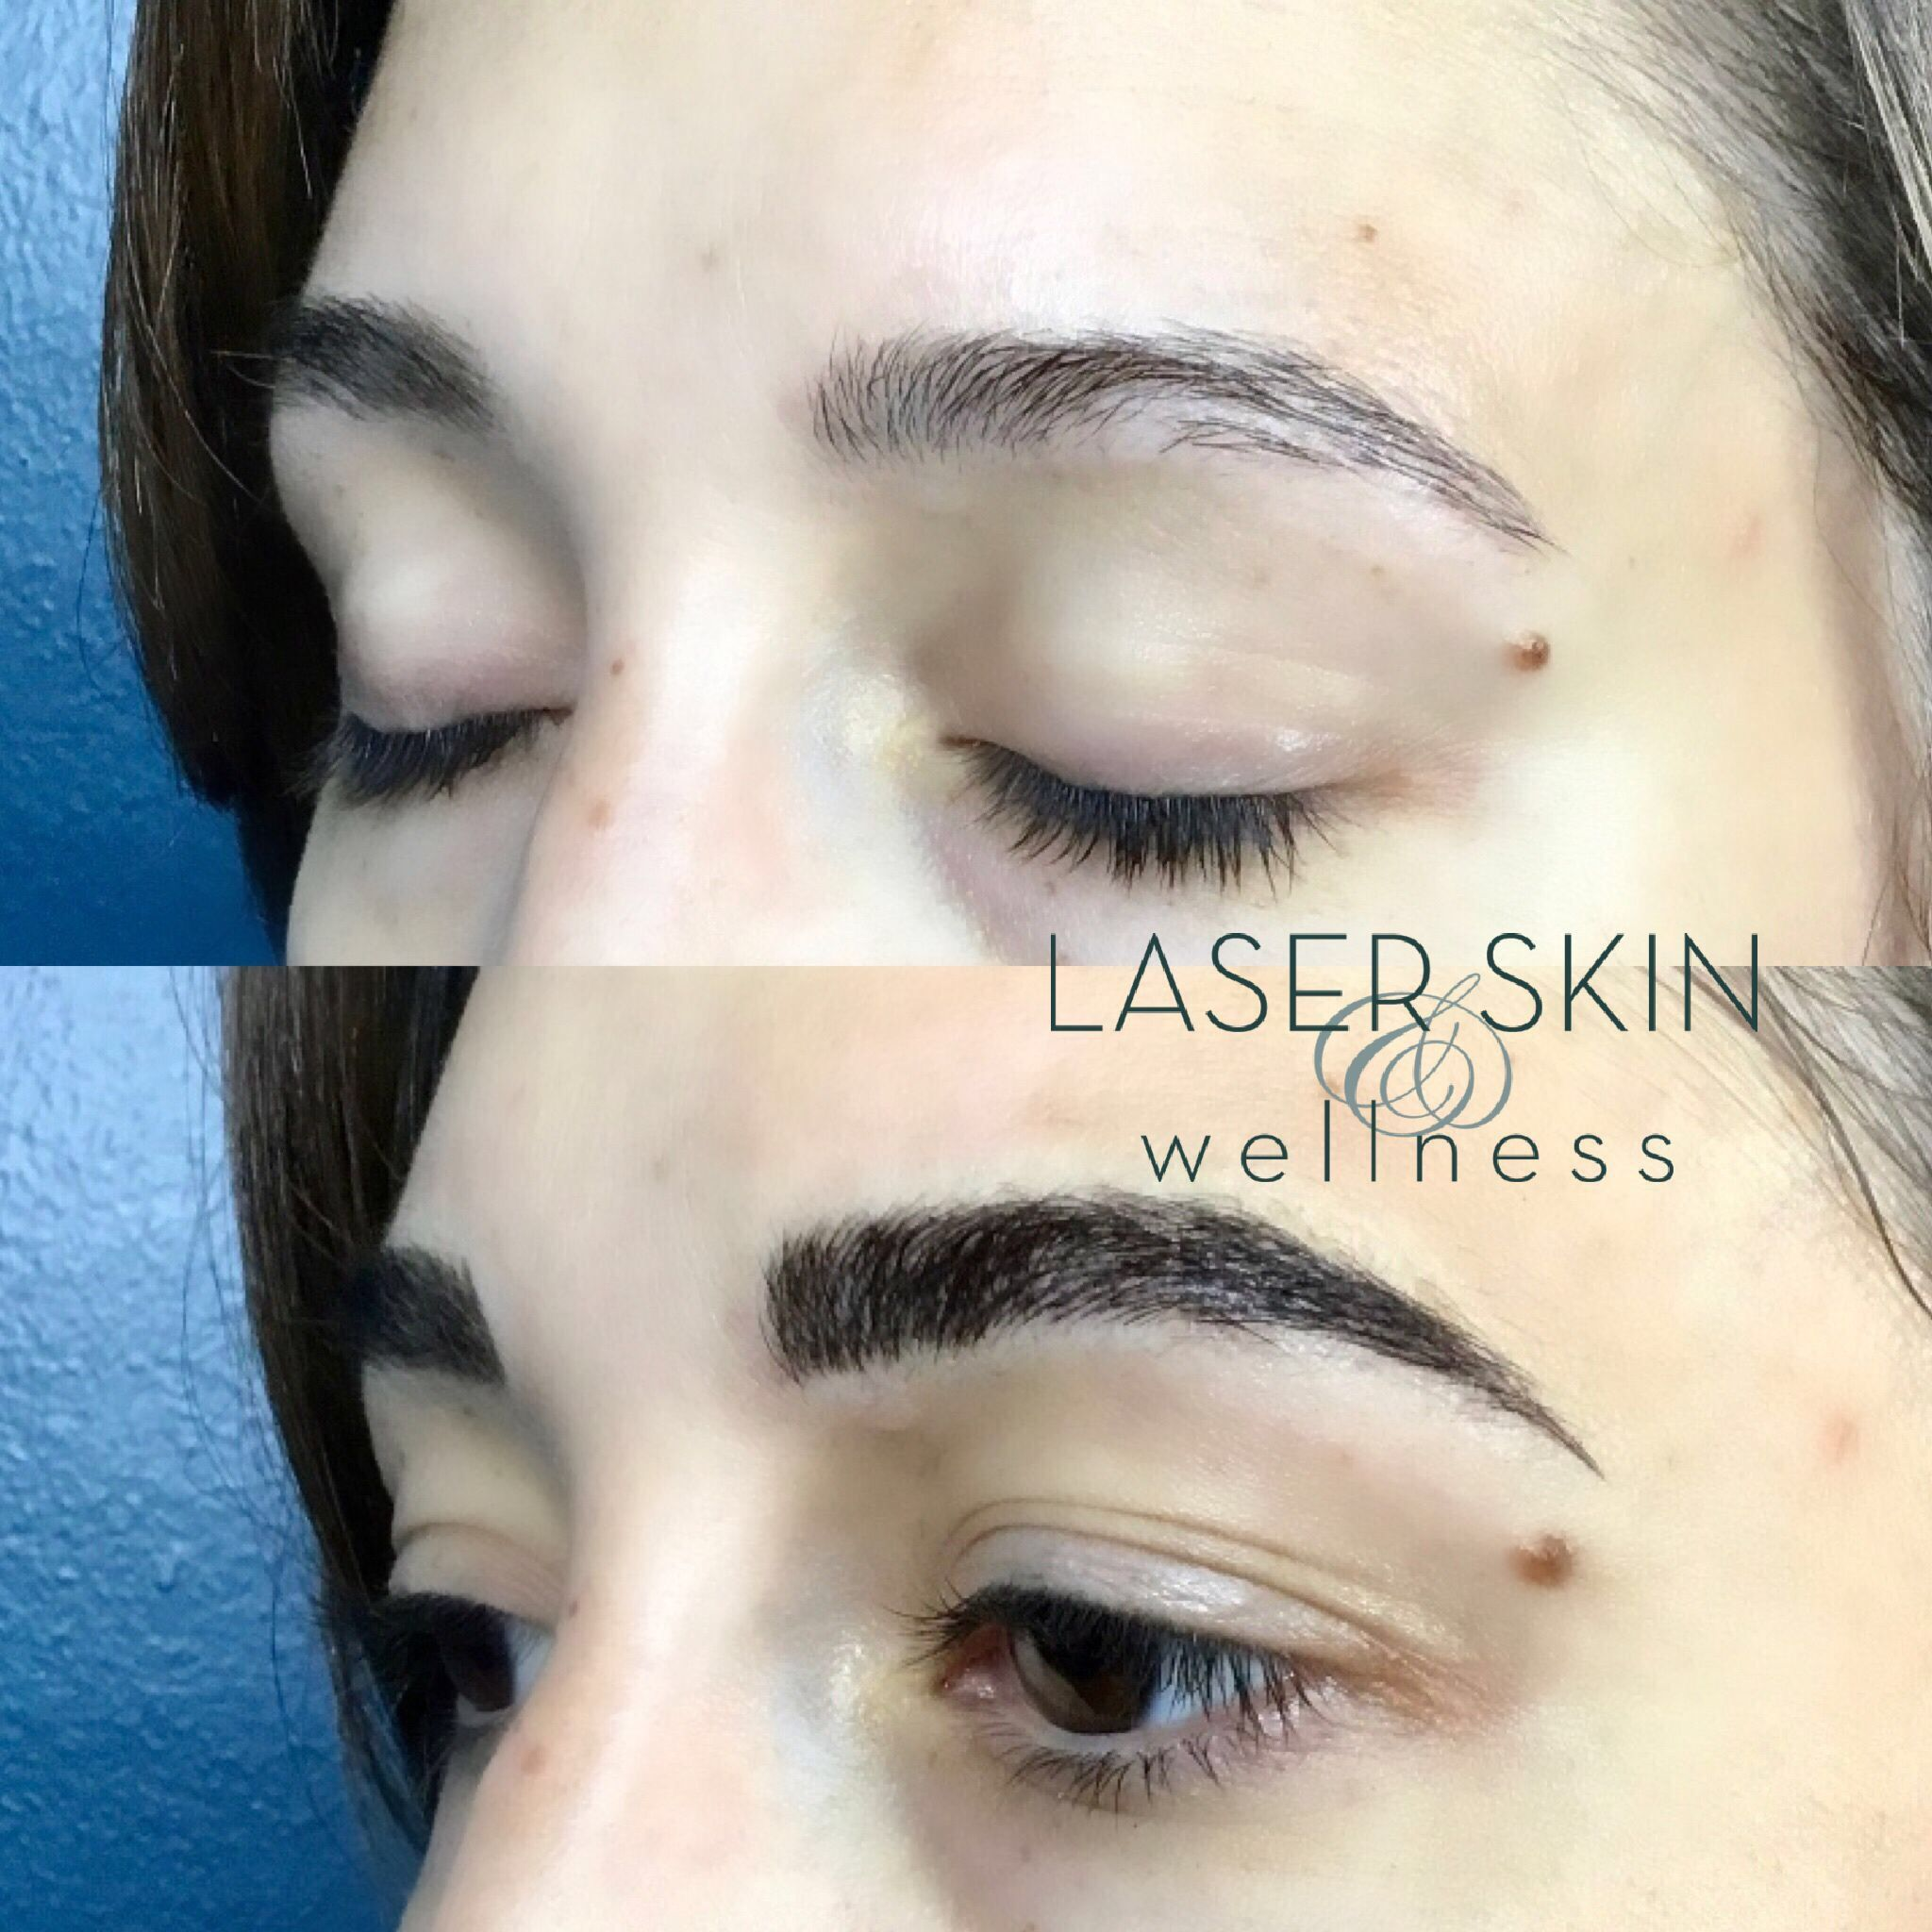 74e21cb175e7374e3190037cad8649ac - Beauty To Go Lasers Palm Beach Gardens